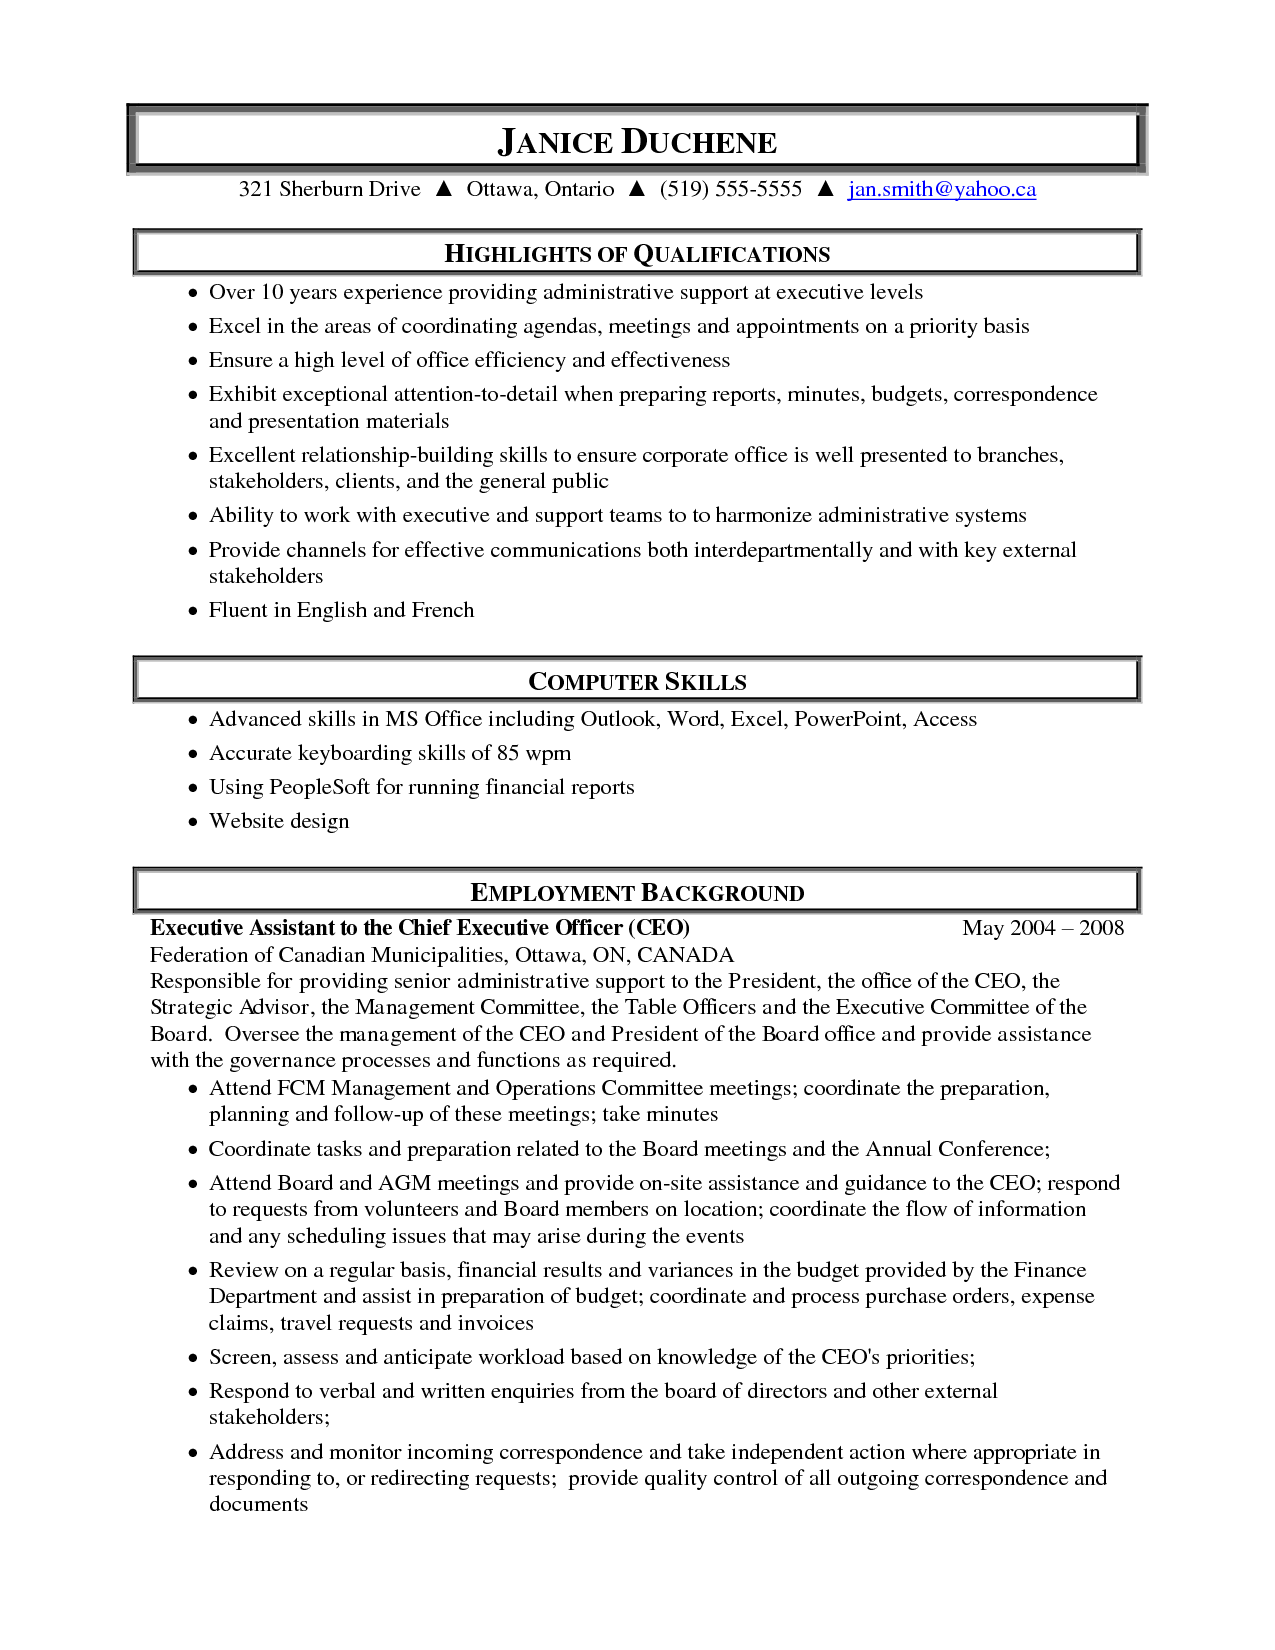 Qualifications Resume Sample Medical Administrative Assistant Resume Samples Highlight